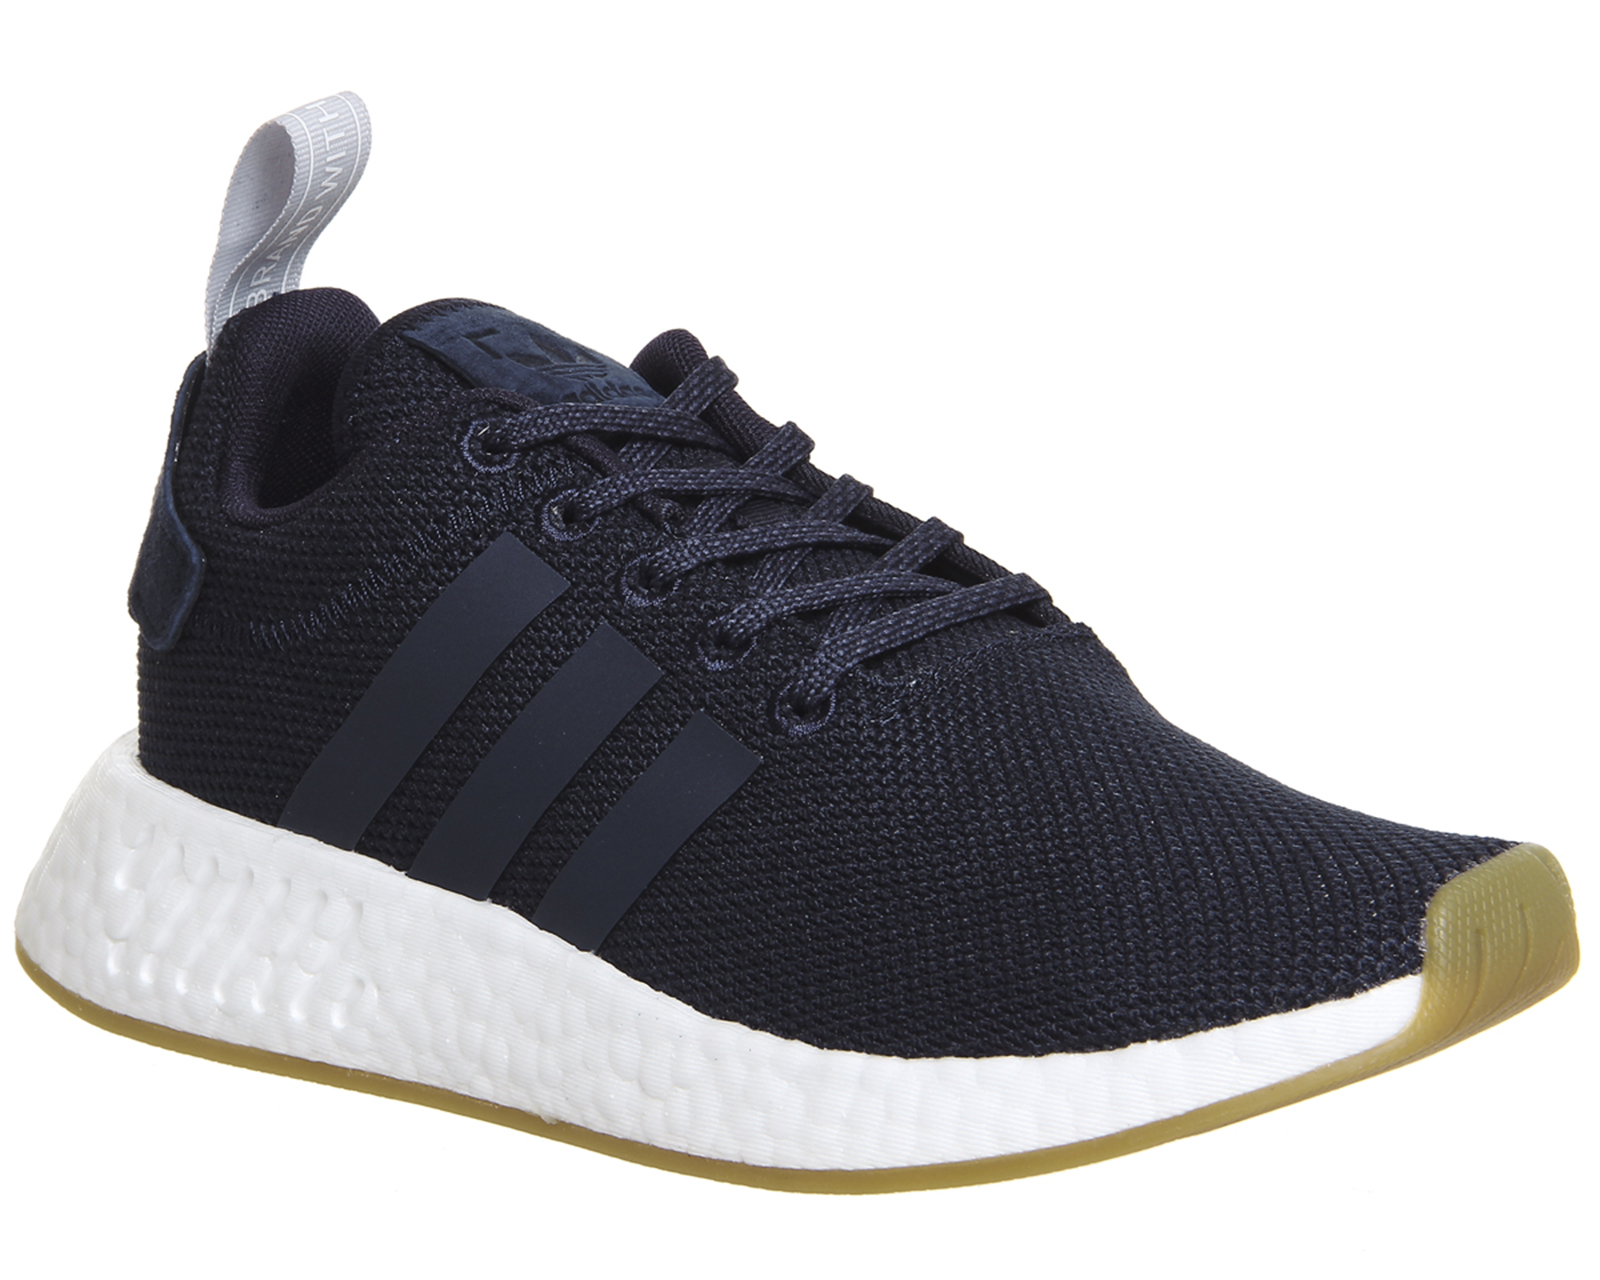 70ef7f05aa0f6 Womens Adidas Nmd R2 Trainers LEGEND INK GREY TWO Trainers Shoes